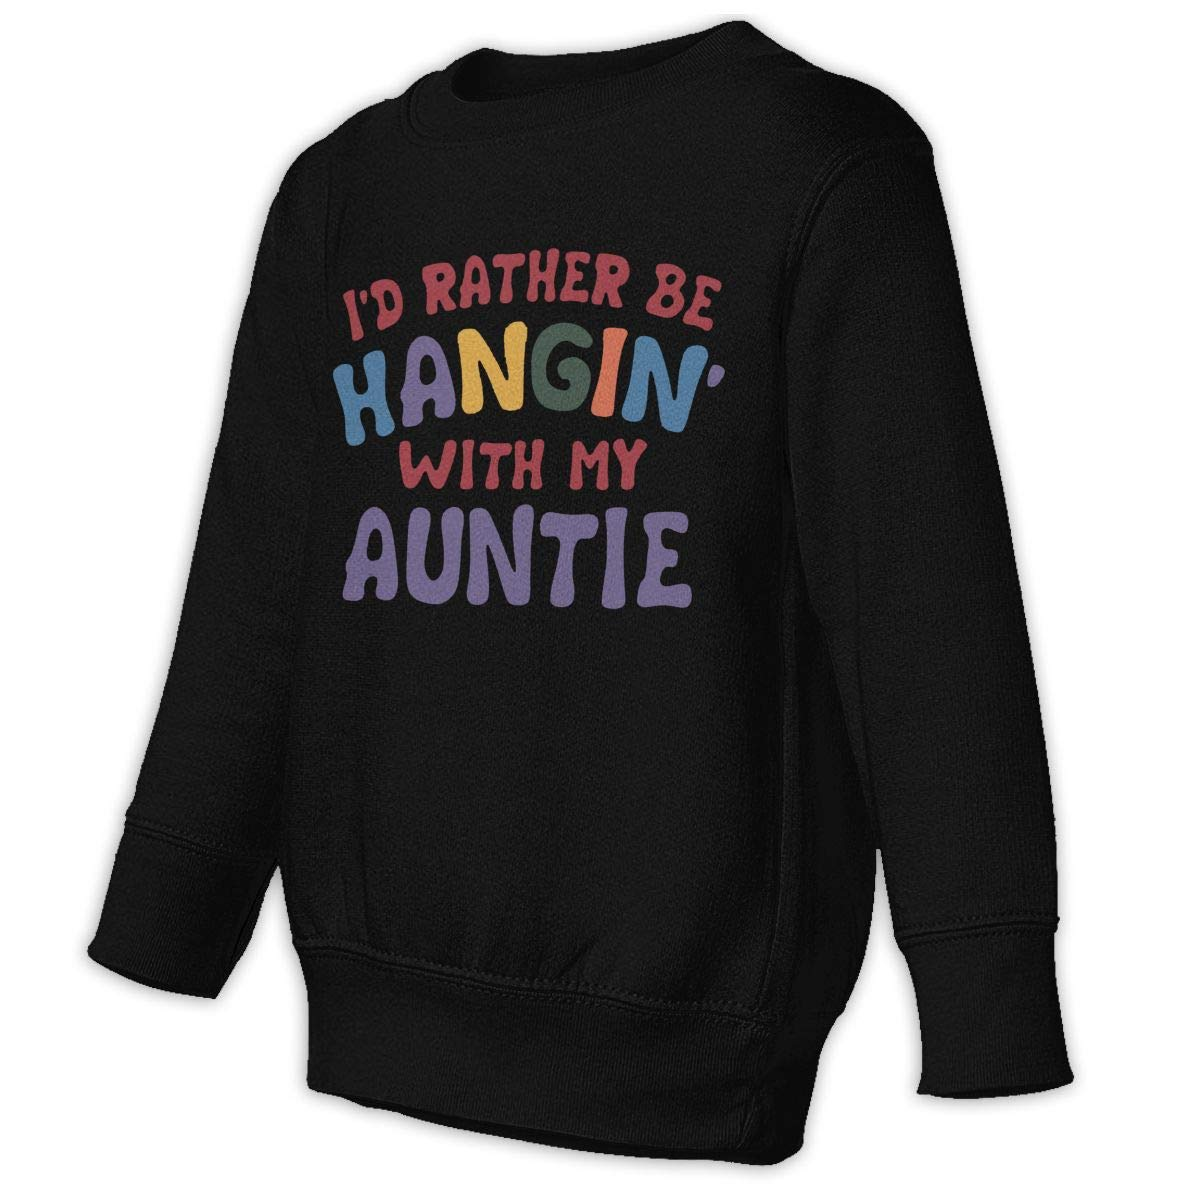 NMDJC CCQ Id Rather Be Hangin with My Aunt Baby Sweatshirt Fashion Juvenile Hoodies Cotton Pullovers